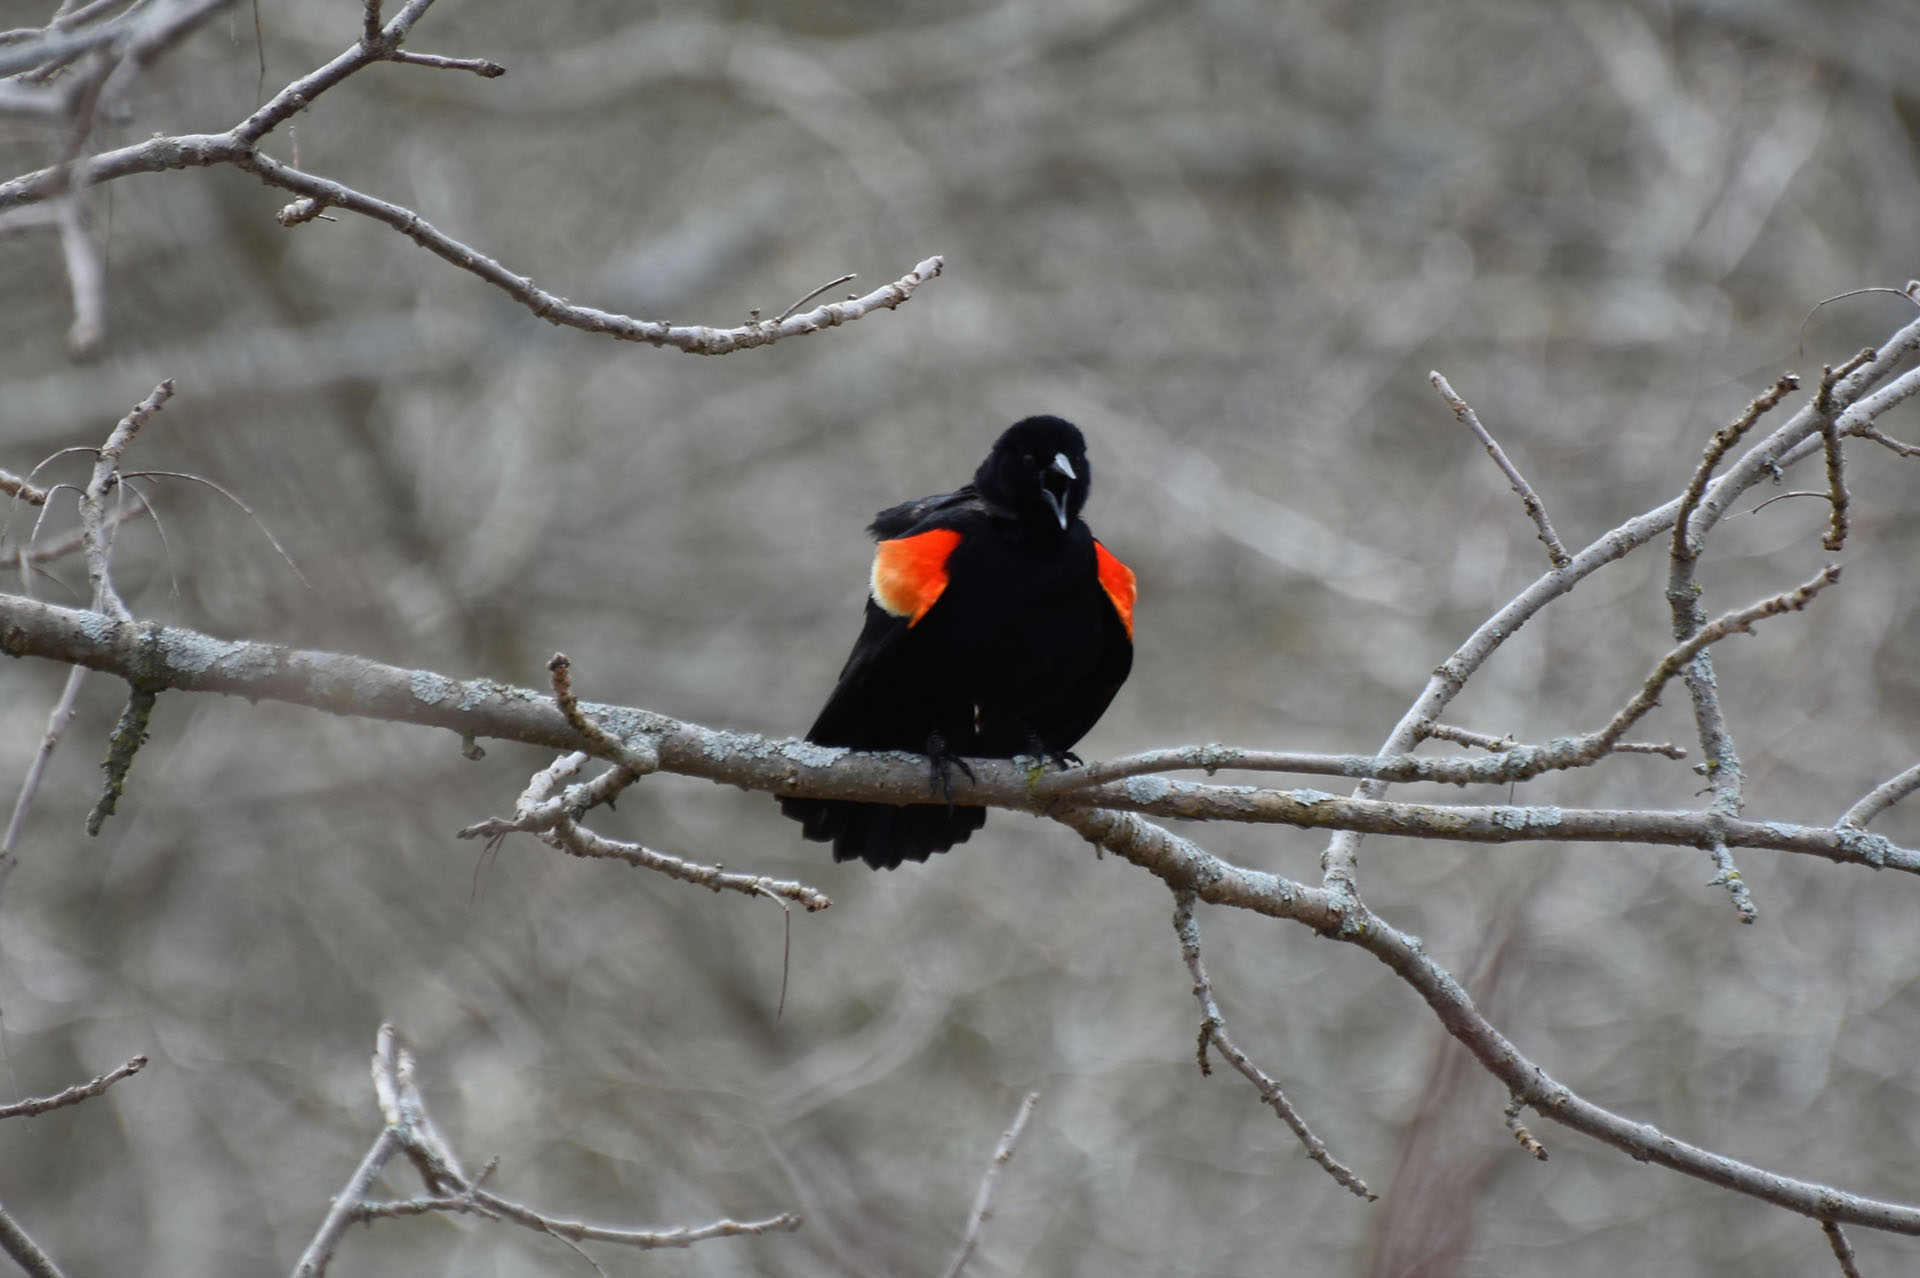 red-winged blackbird dive bombing